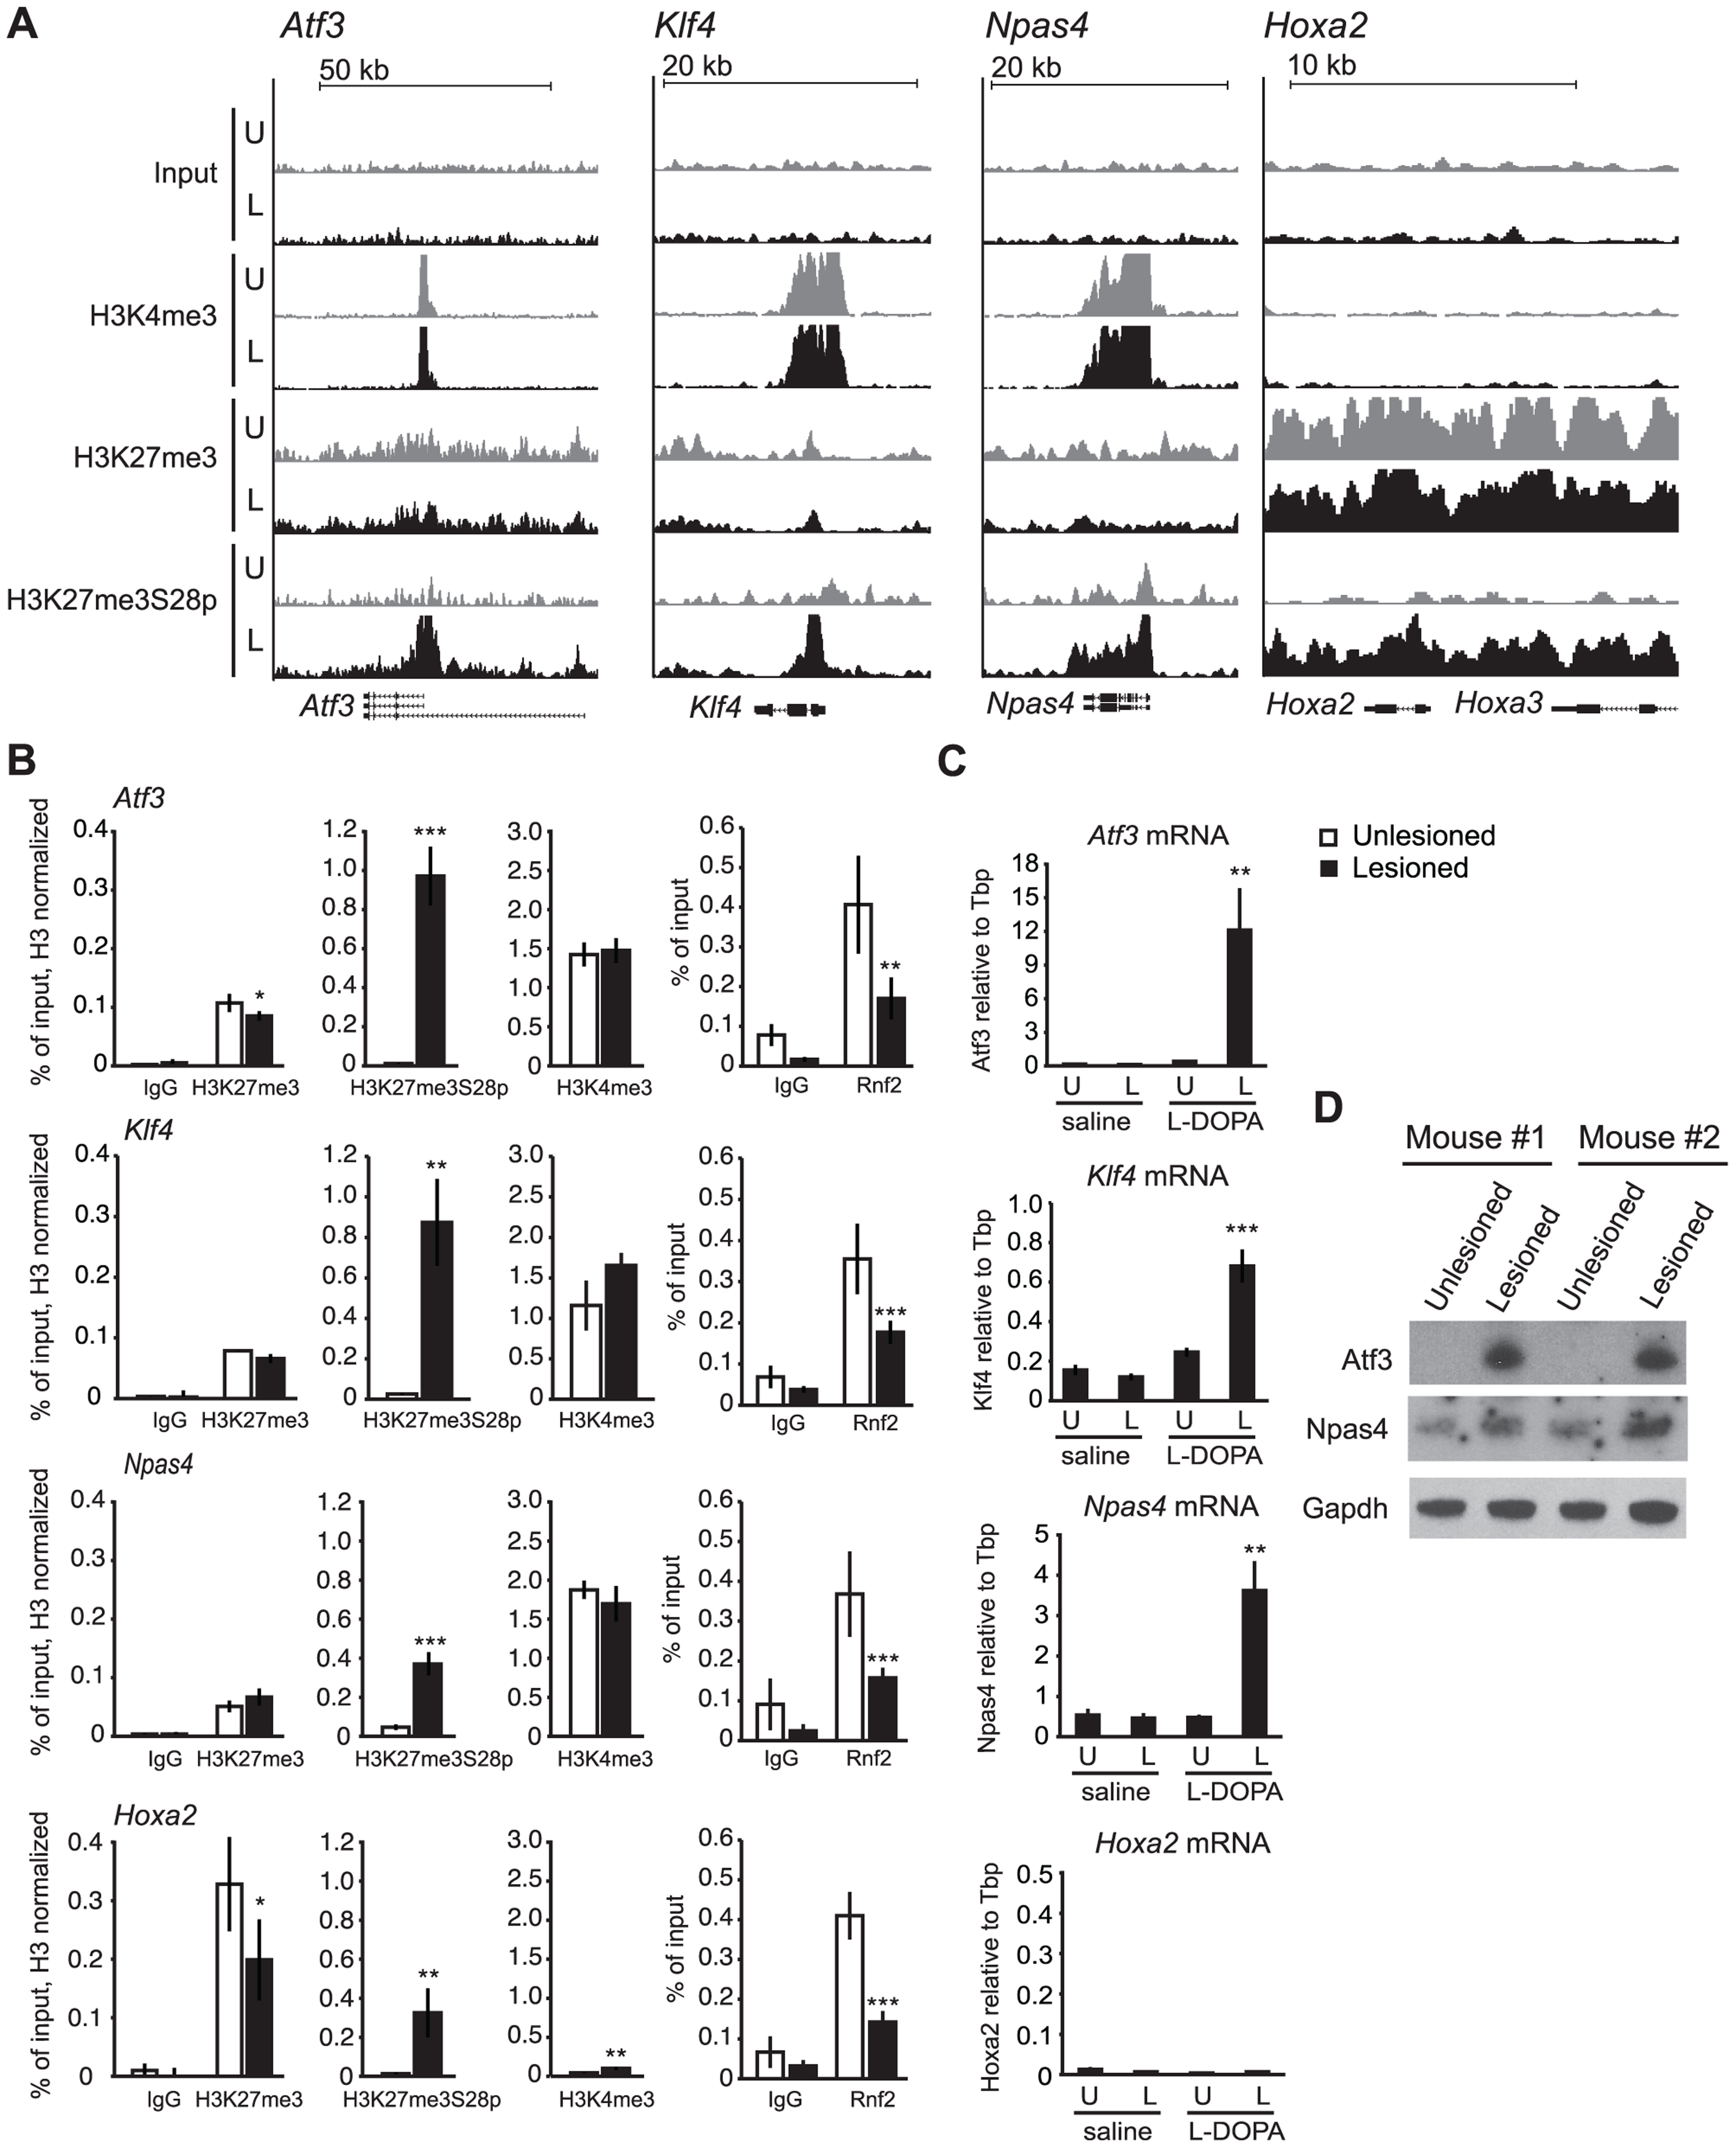 L-DOPA mediated H3K27me3S28 phosphorylation correlate with reduced PcG binding and derepression of genes.